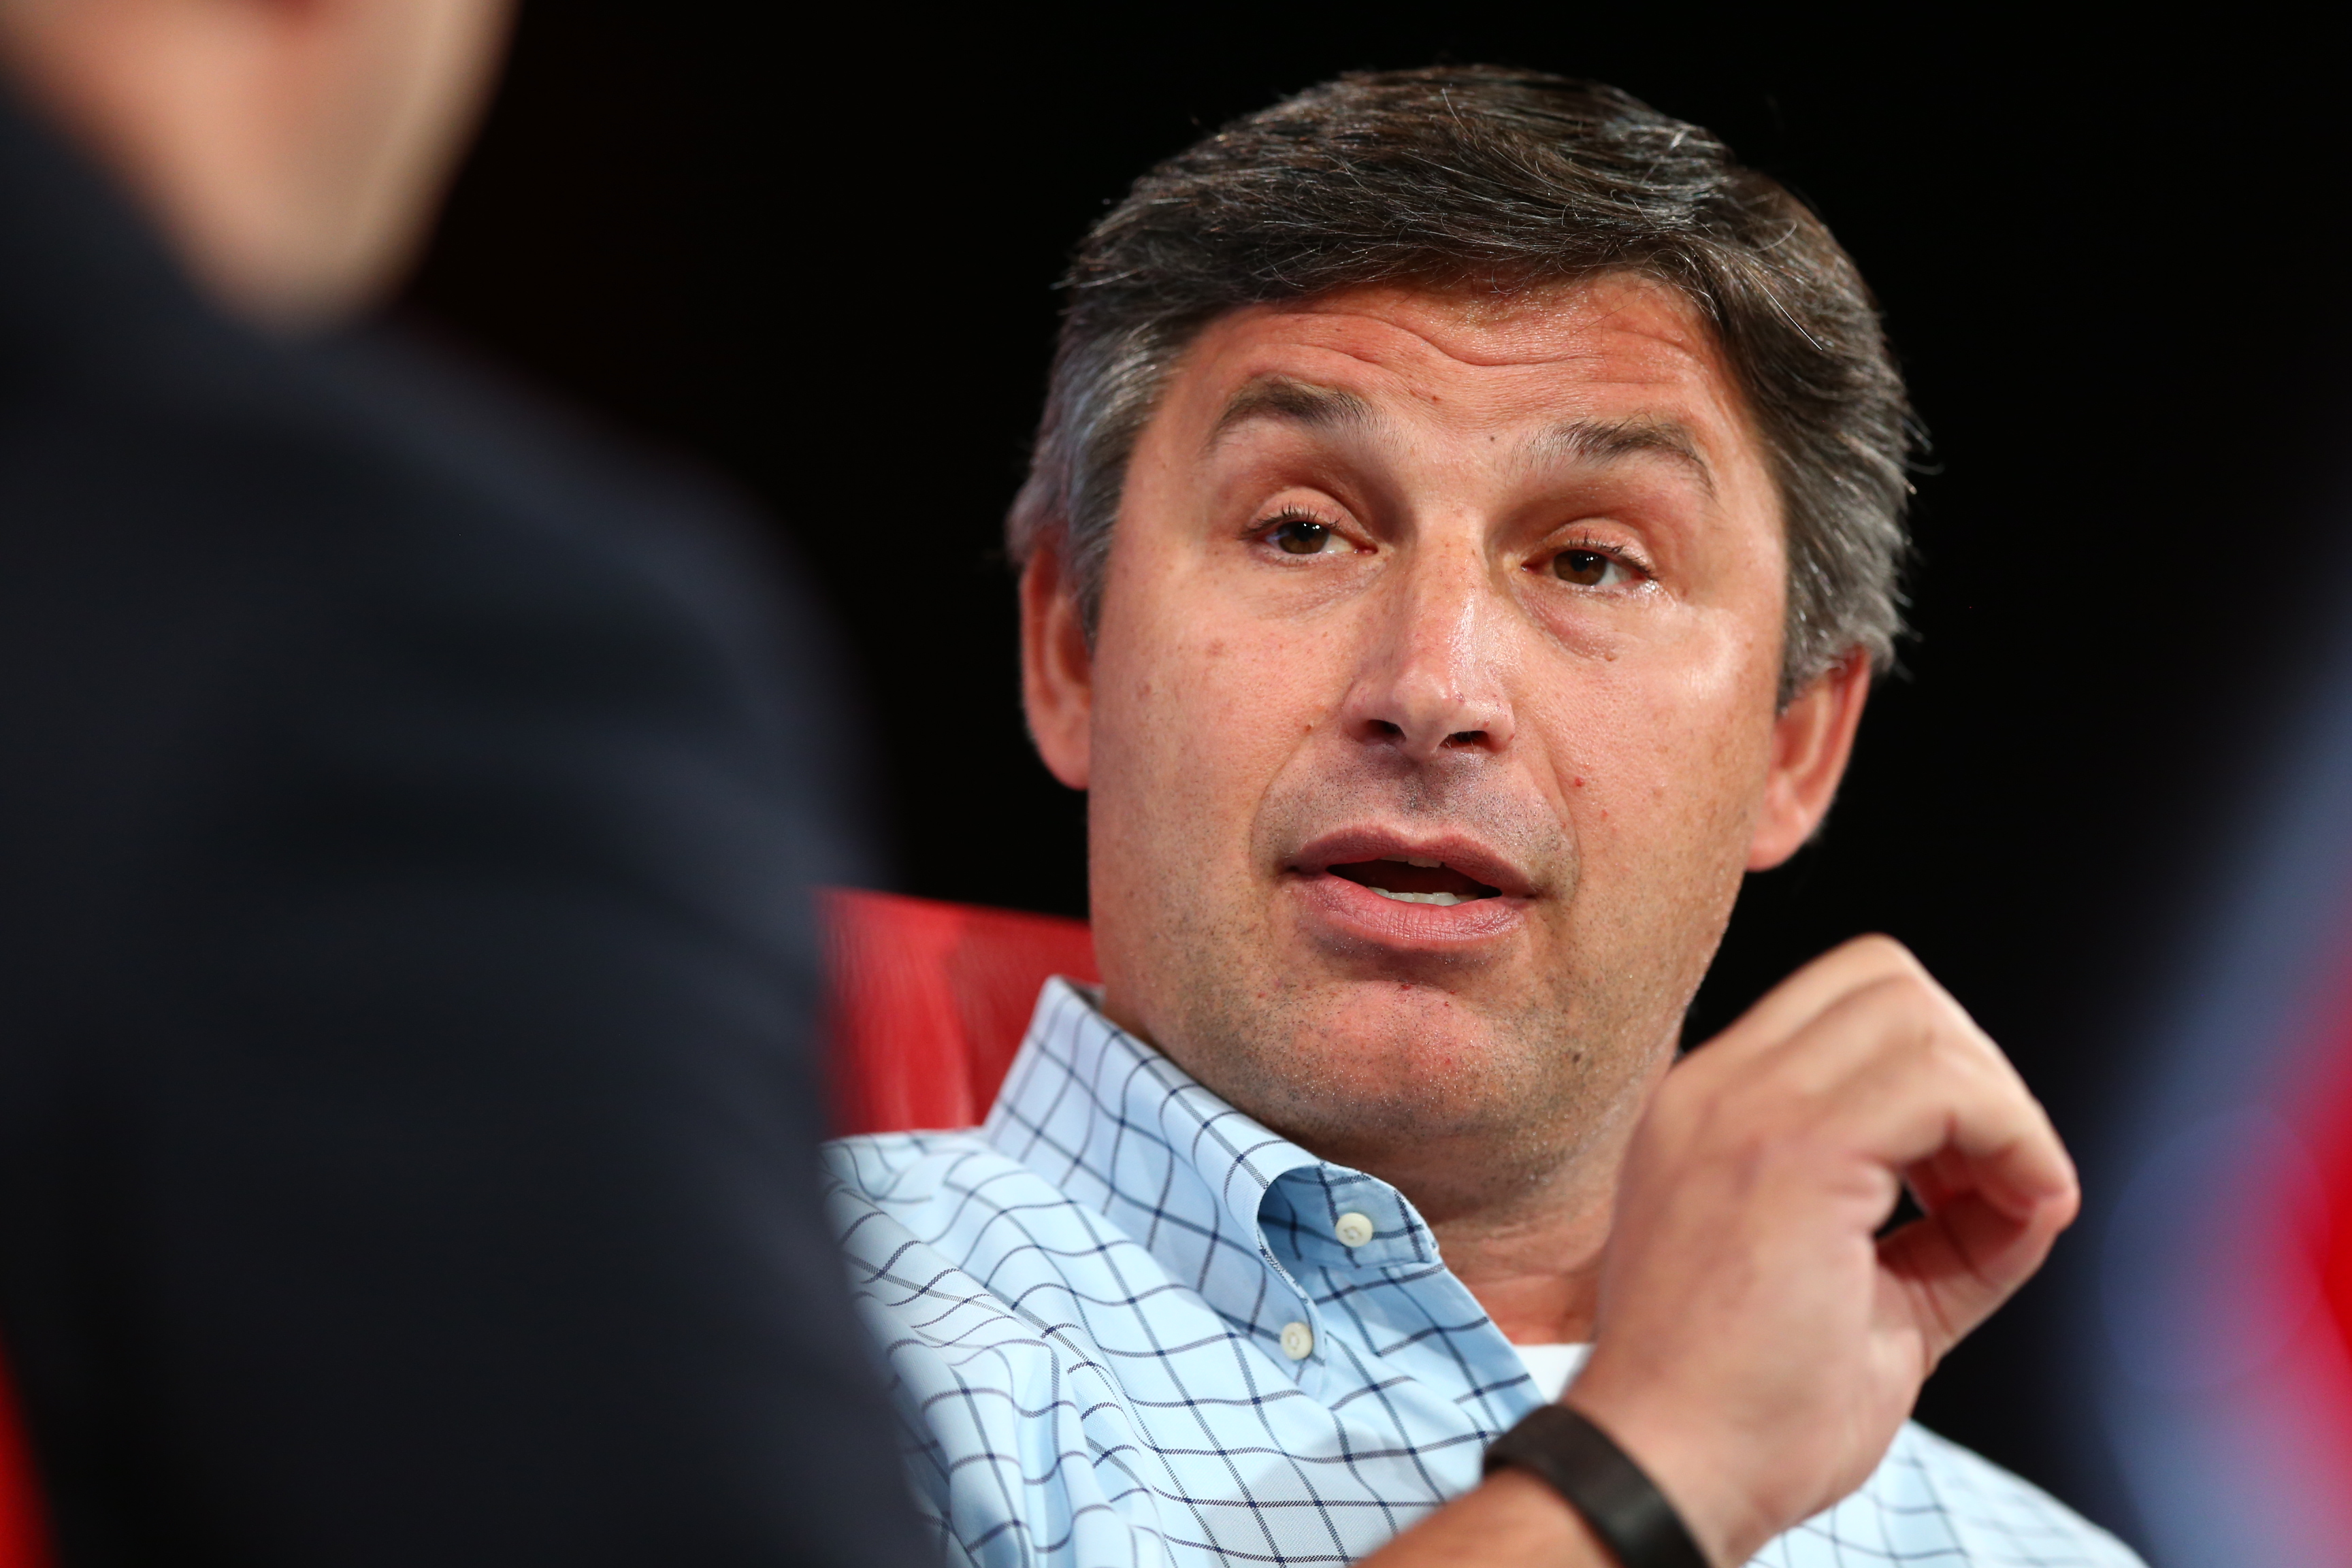 Anthony Noto stabilized SoFi. Now, he's trying to make the online lender a household name.